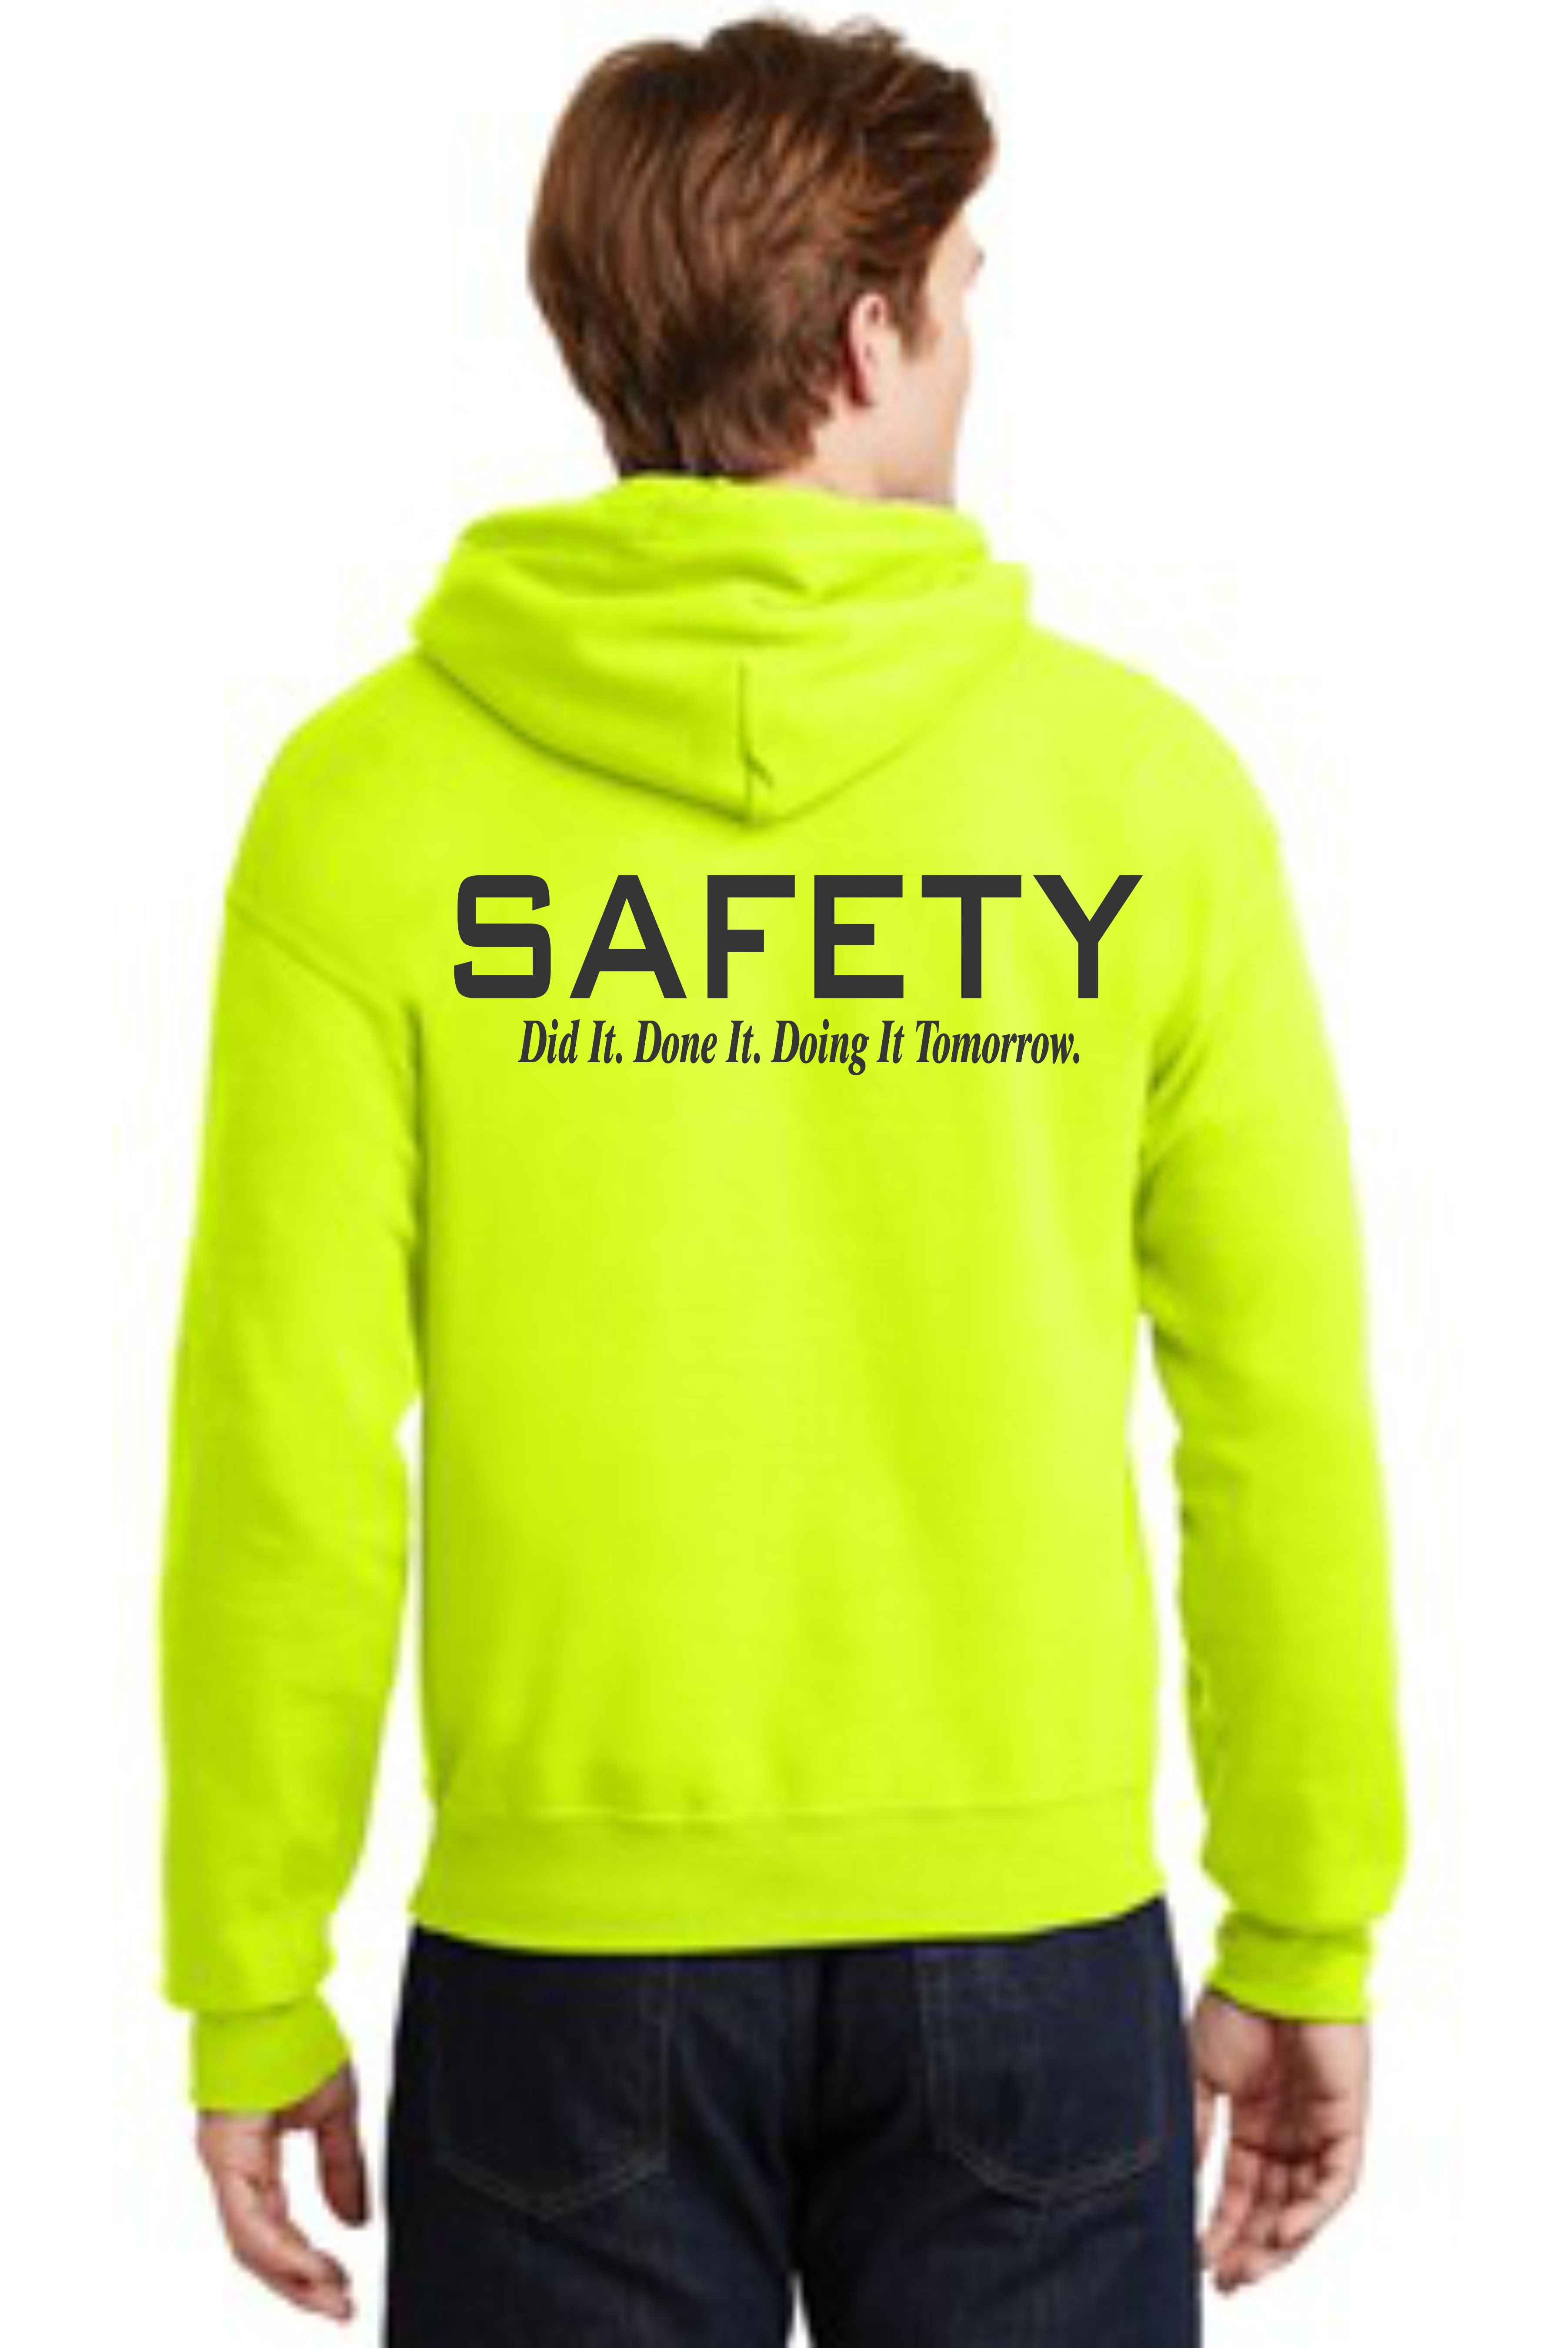 HOODED SAFETY SWEATSHIRT -- DID IT. DONE IT. DOING IT TOMORROW.